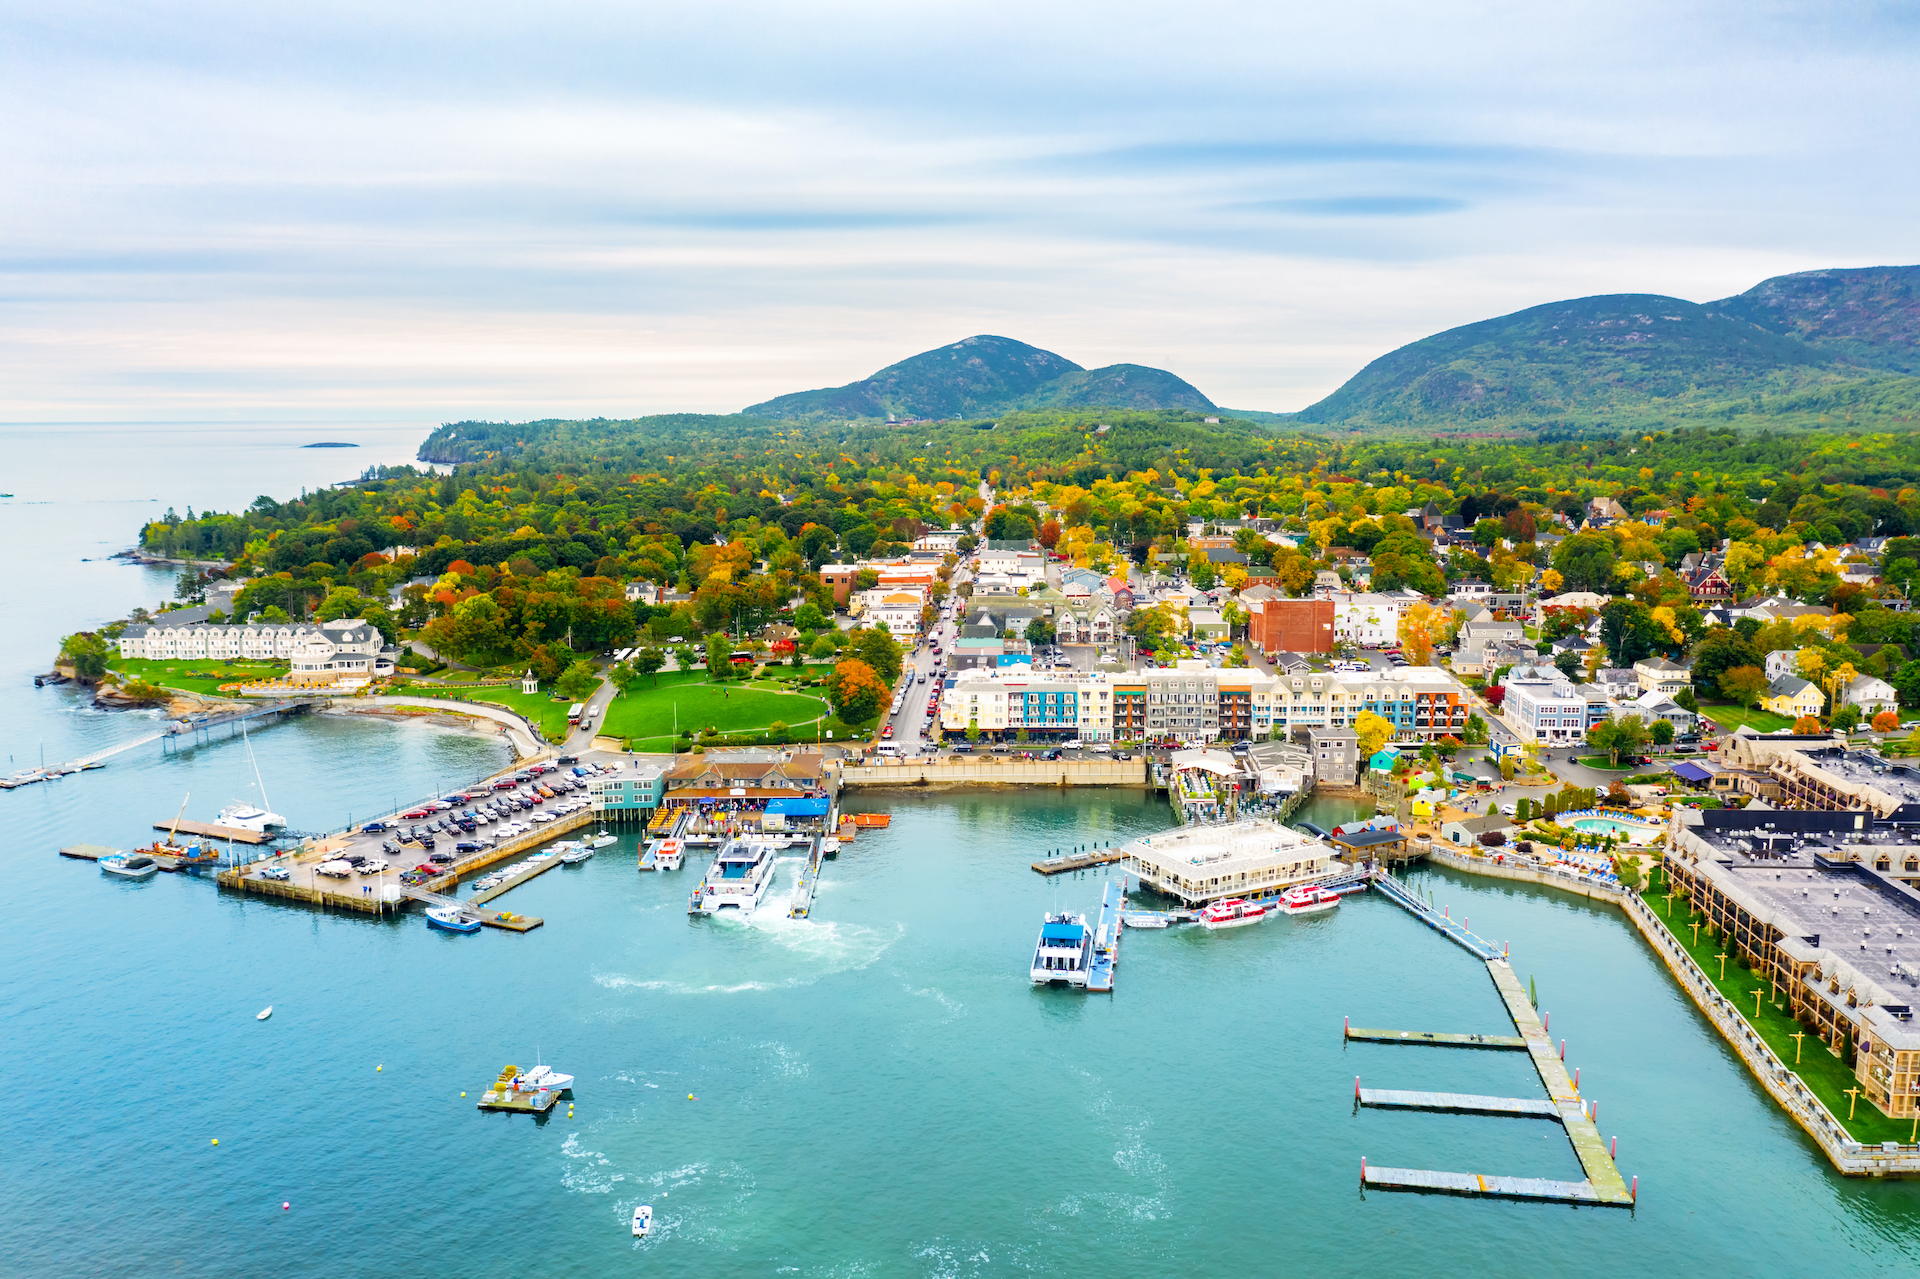 aerial view of teal waters and colorful buildings of Bar Harbor, Maine